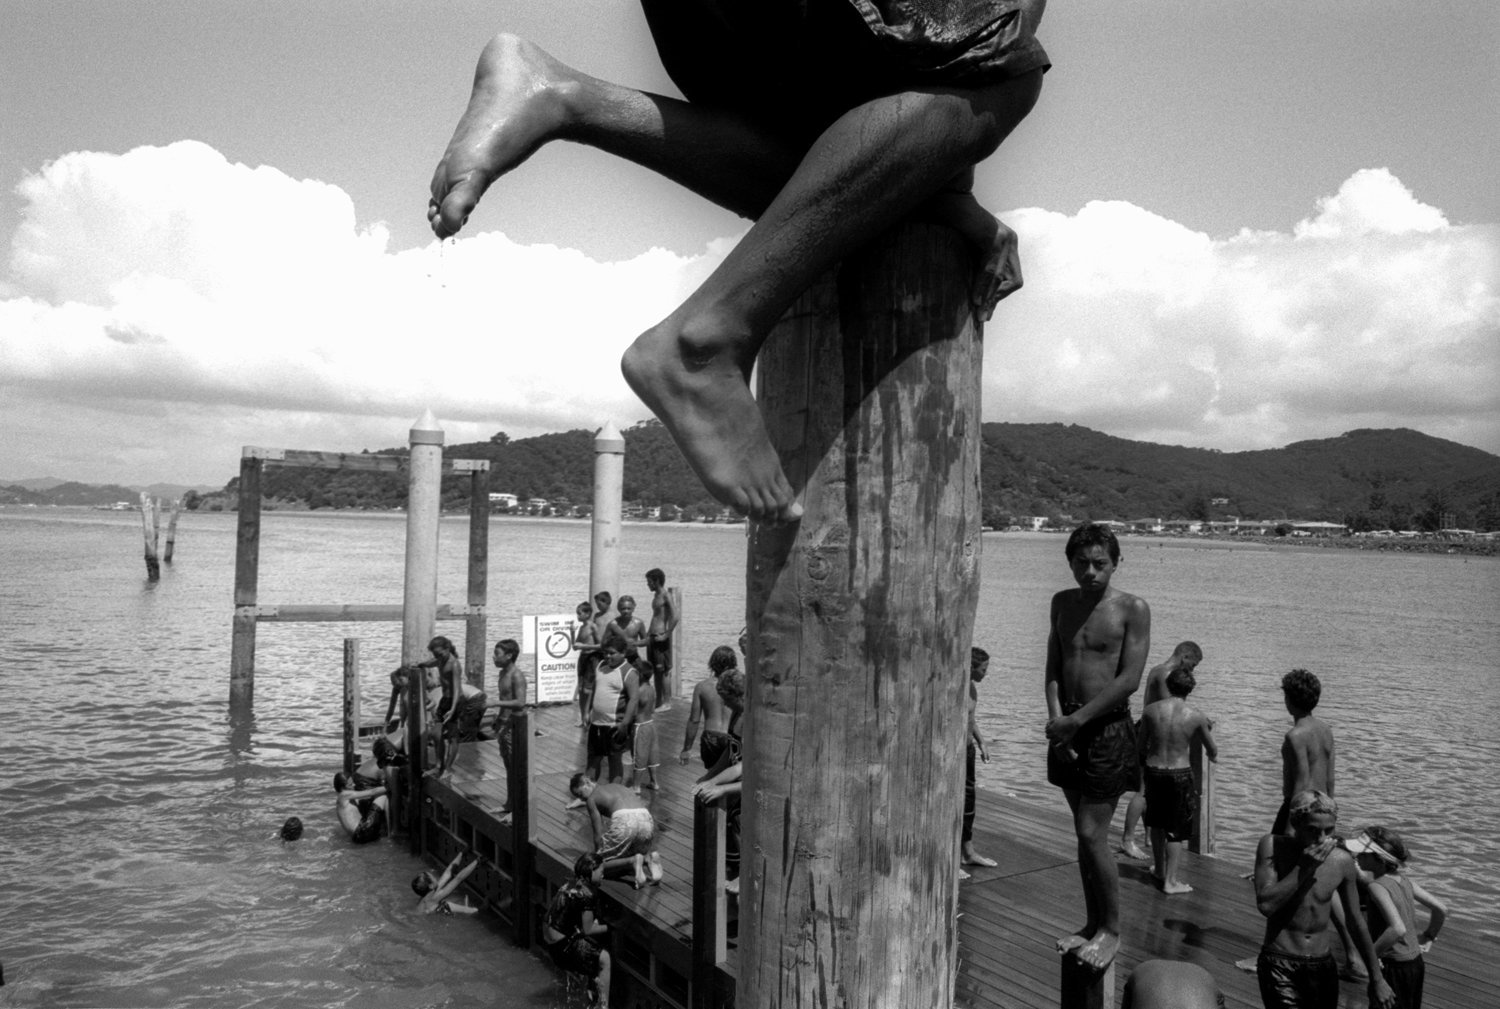 Maori youth swim near the Waitangi treaty grounds.  There is currently a renaissance of traditional Maori culture in New Zealand.  Maori children are taught their language and customs by elders. The connection to the land is very strong in Maori culture.